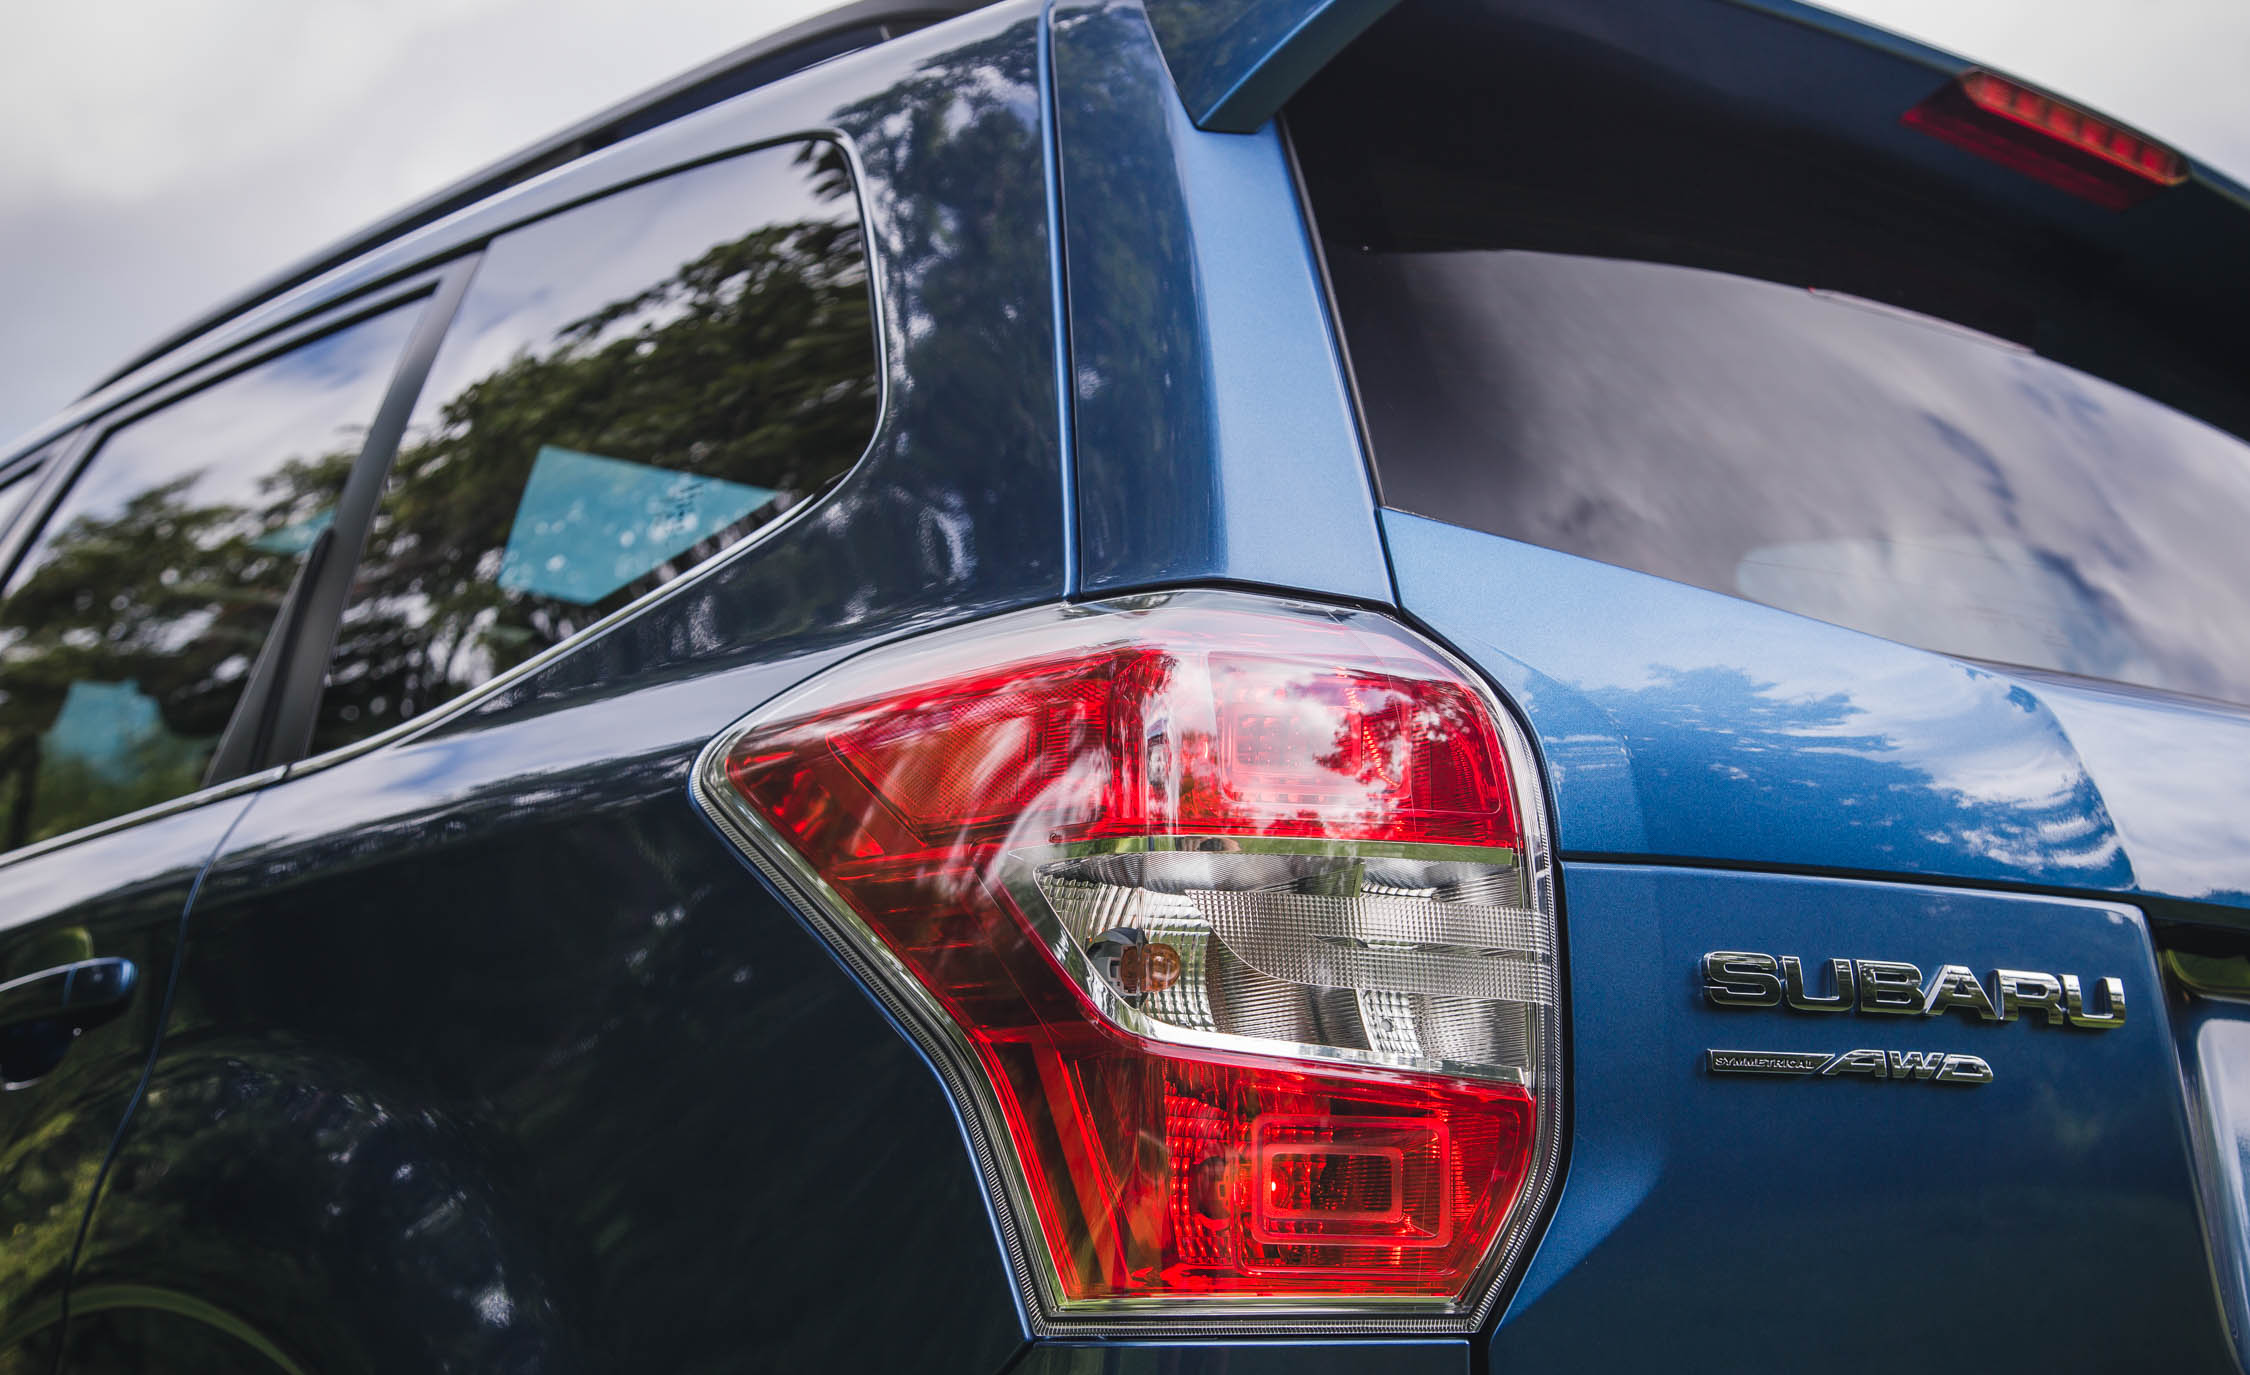 2016 Subaru Forester 2 0xt Touring Exterior Taillight Left (Photo 10 of 29)